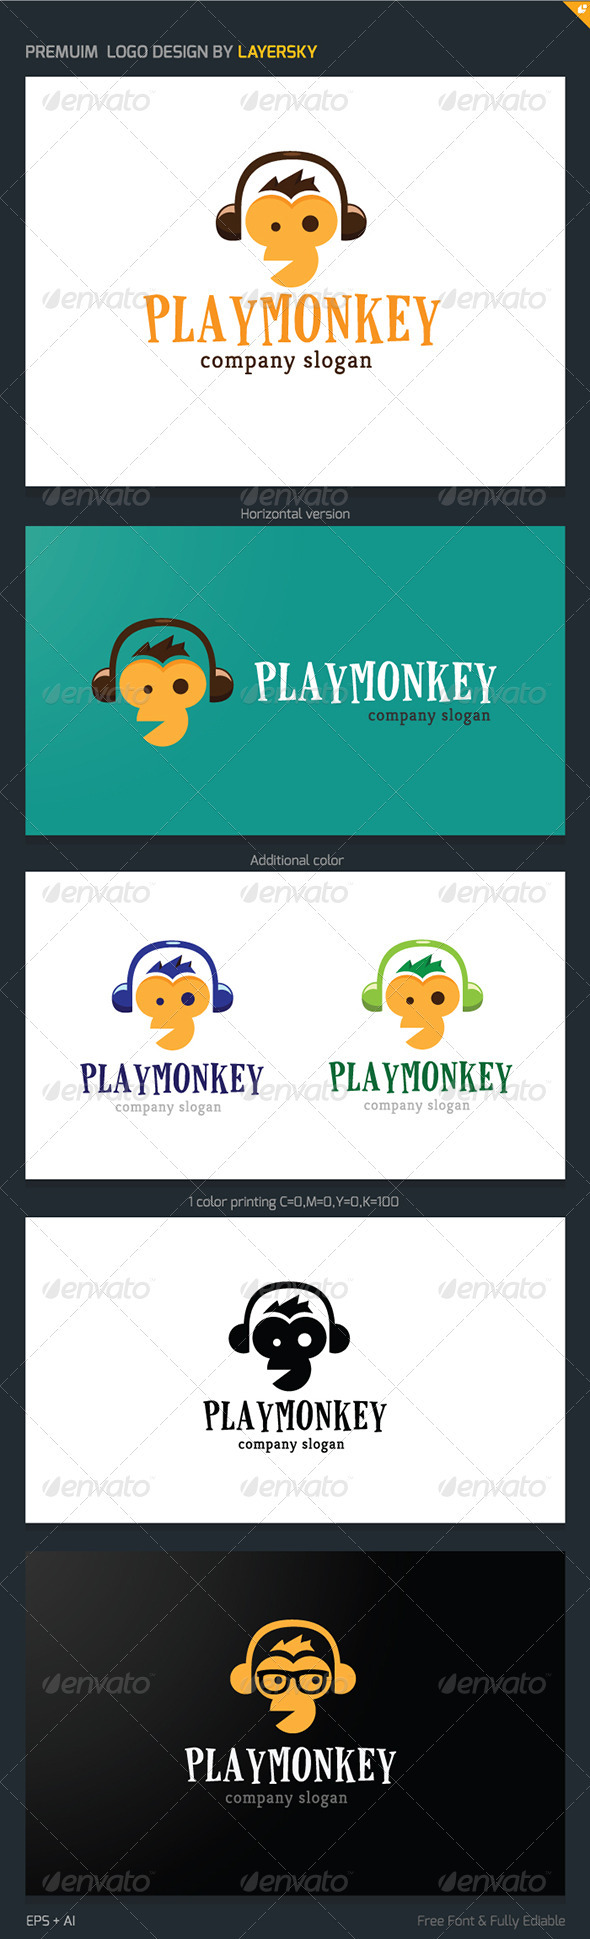 GraphicRiver Play Monkey Logo 3846394